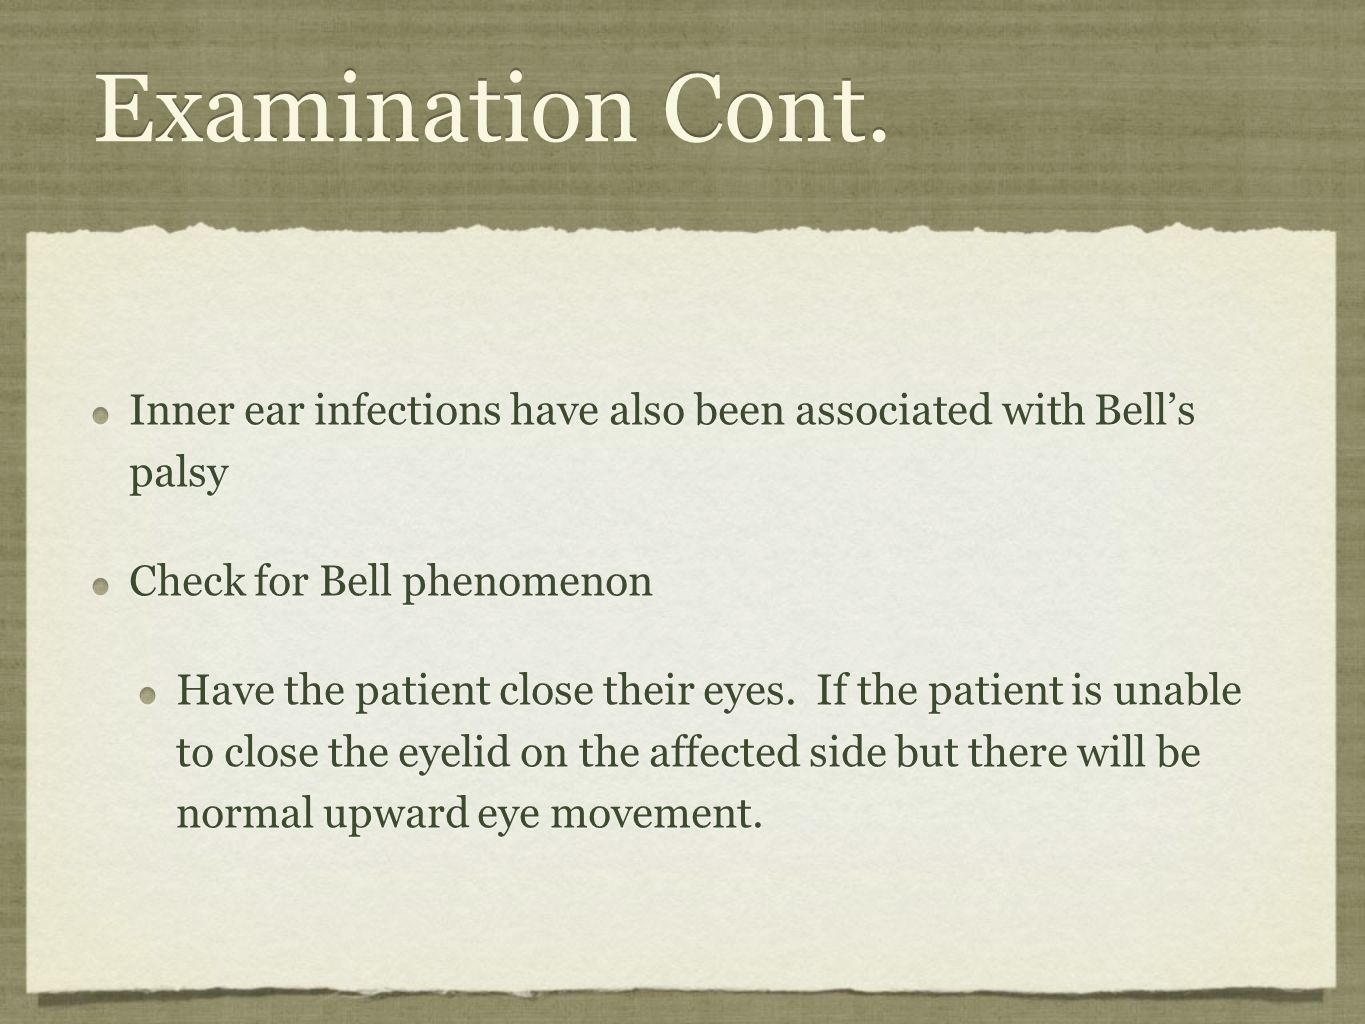 Examination Cont. Inner ear infections have also been associated with Bell's palsy Check for Bell phenomenon Have the patient close their eyes. If the